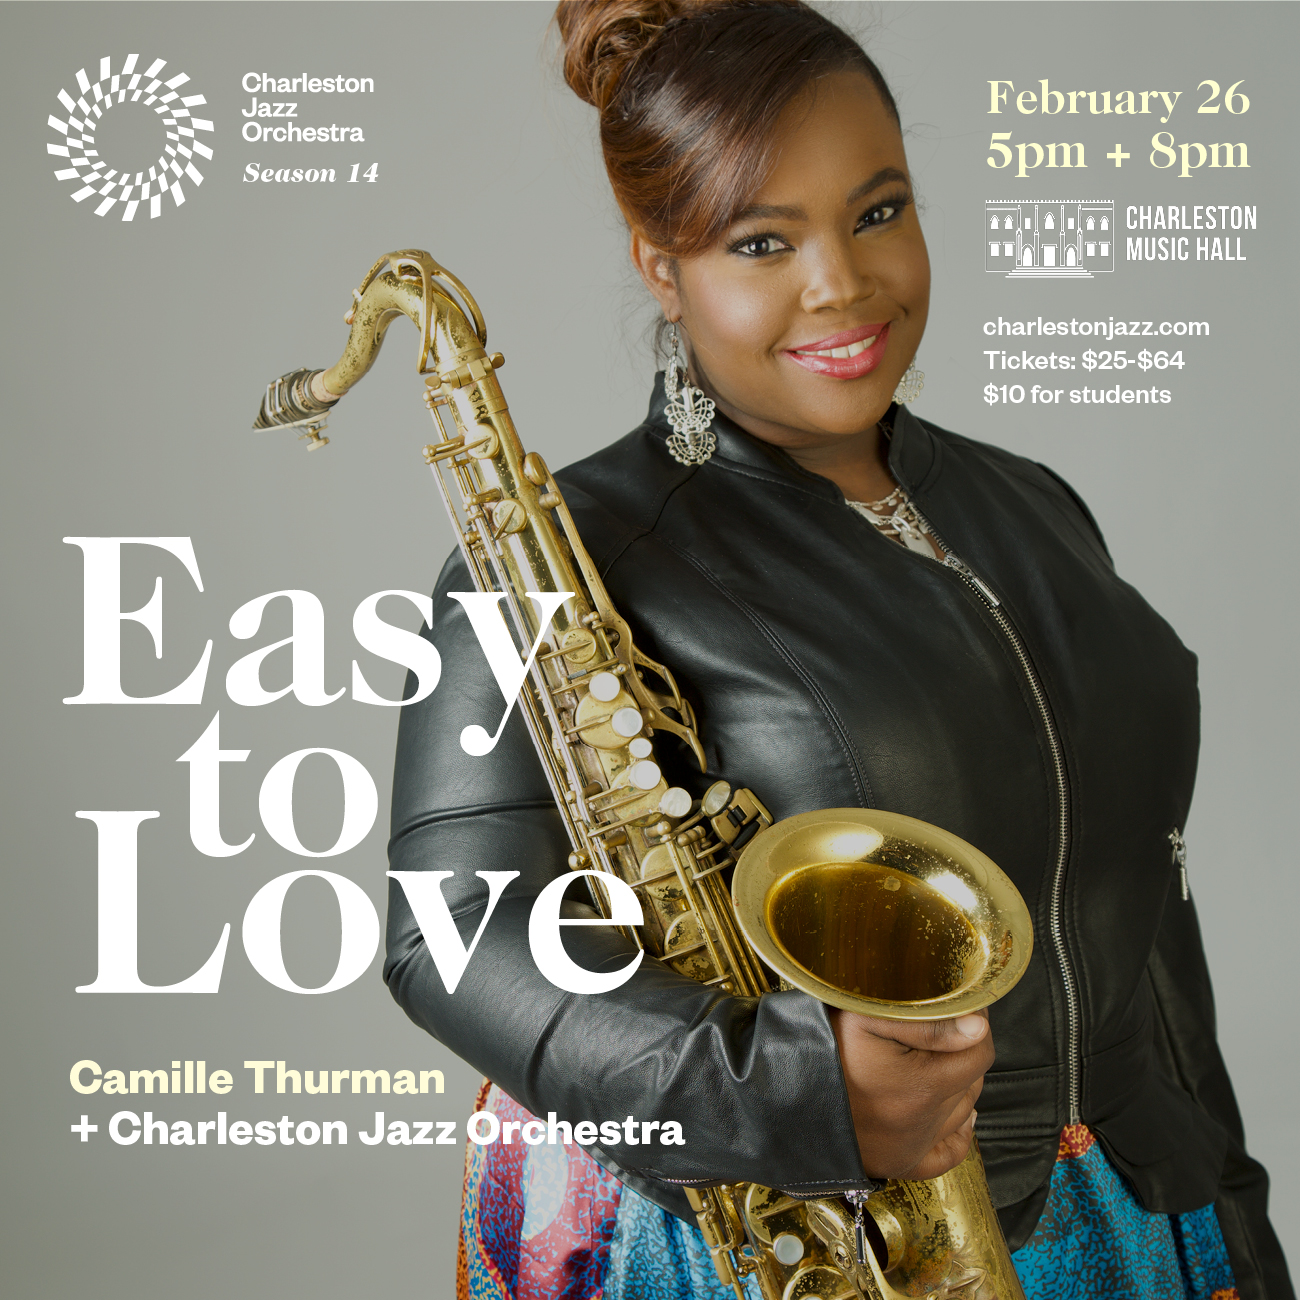 Easy to Love: Camille Thurman + CJO